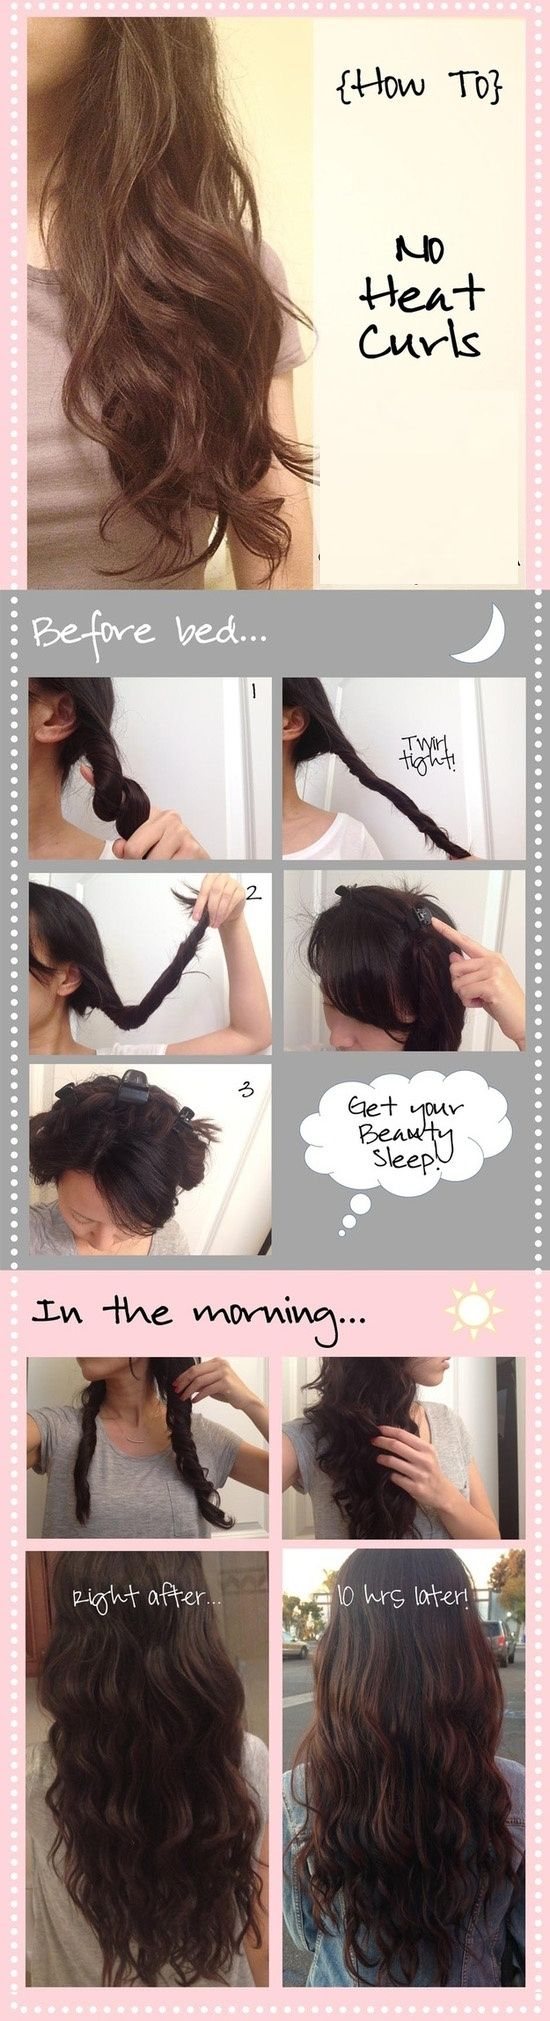 """""""So I did this and it really works, but i do three twist because my hair is thick. I do this practically every day (it is a real time saver in the morning)."""""""